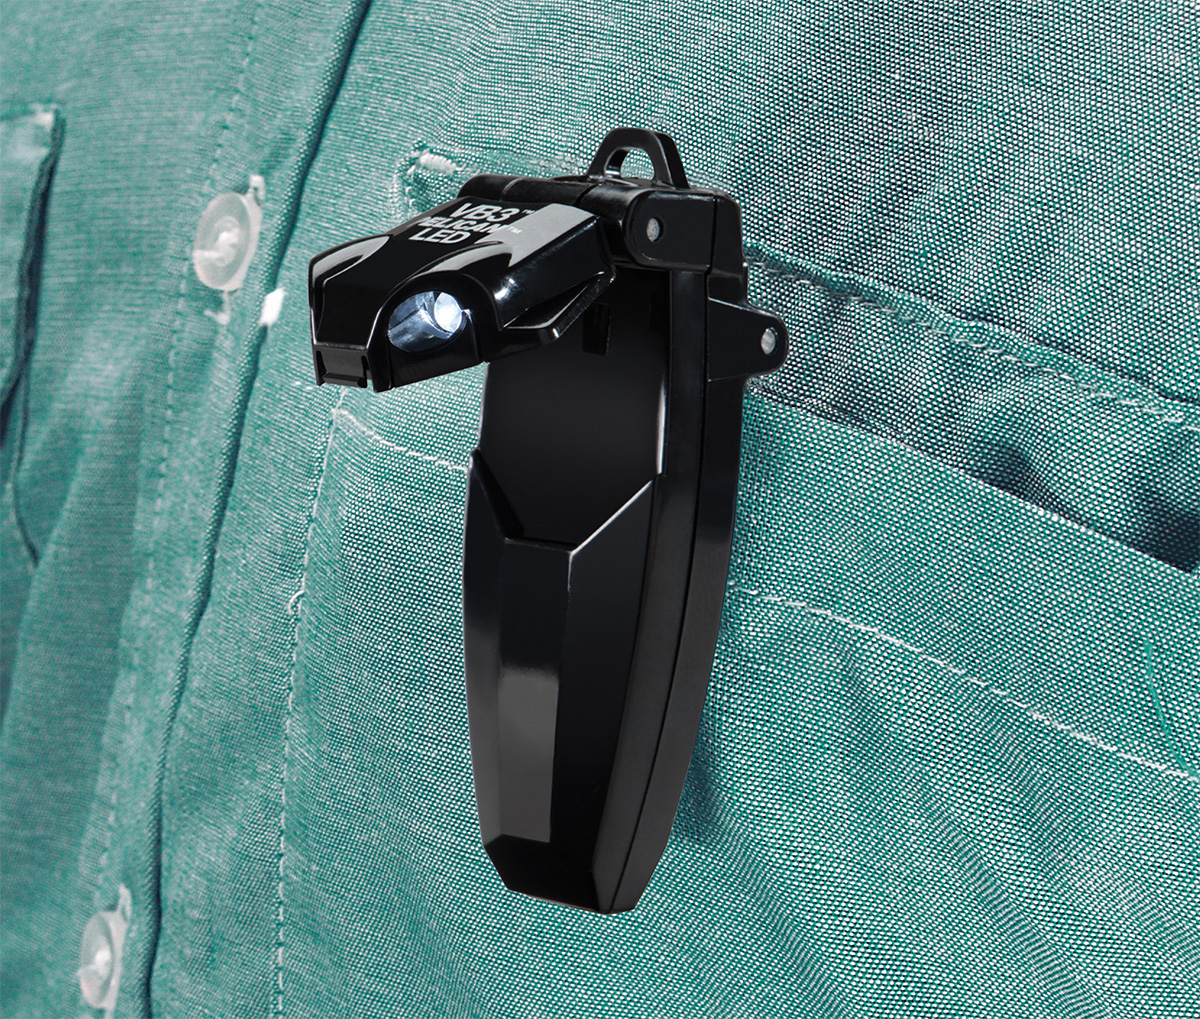 pelican 2220 bright shirt pocket clip on led light